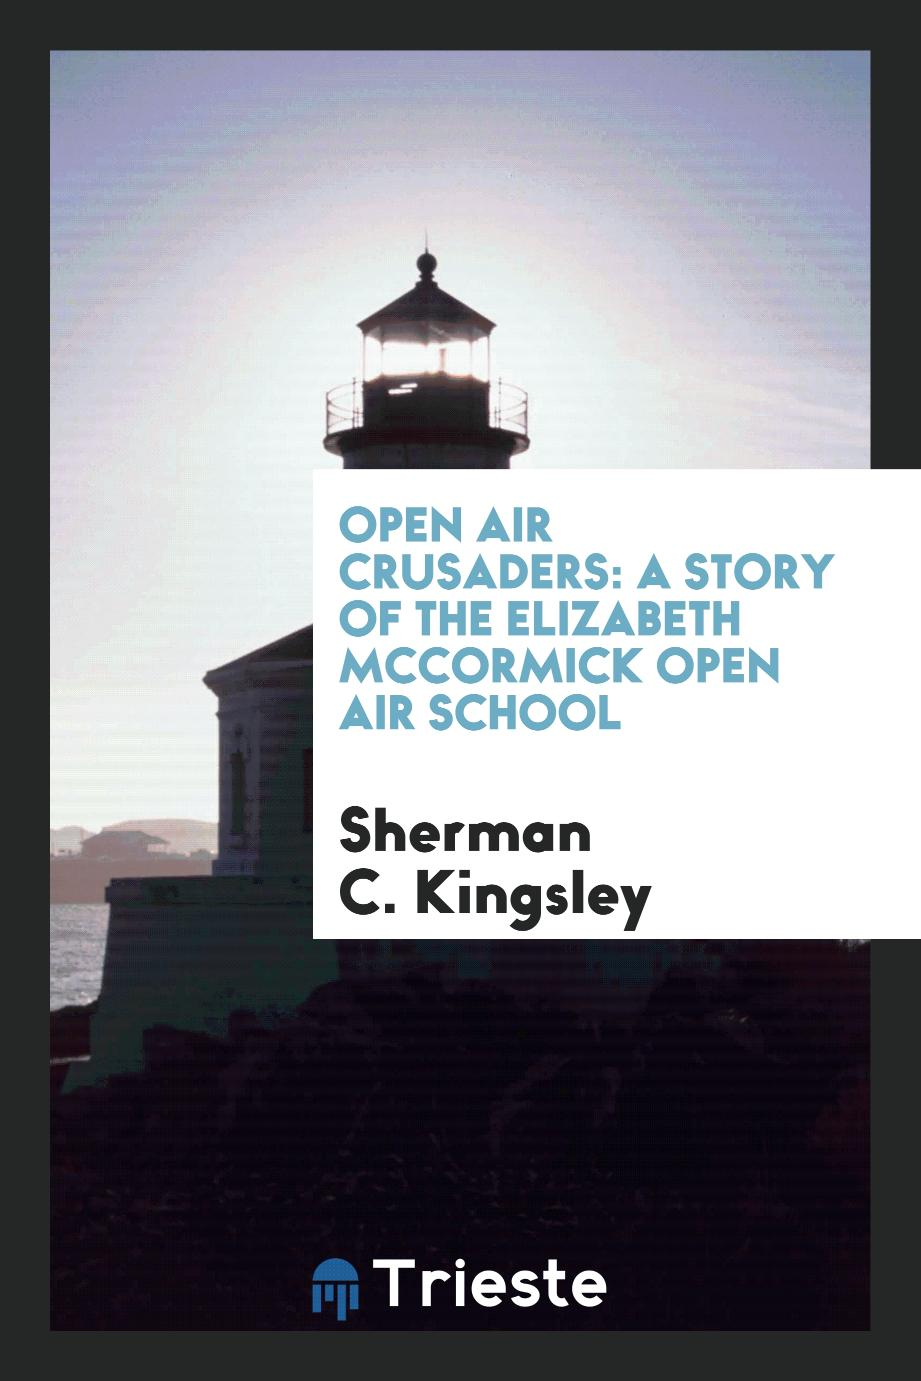 Open Air Crusaders: A Story of the Elizabeth McCormick Open Air School